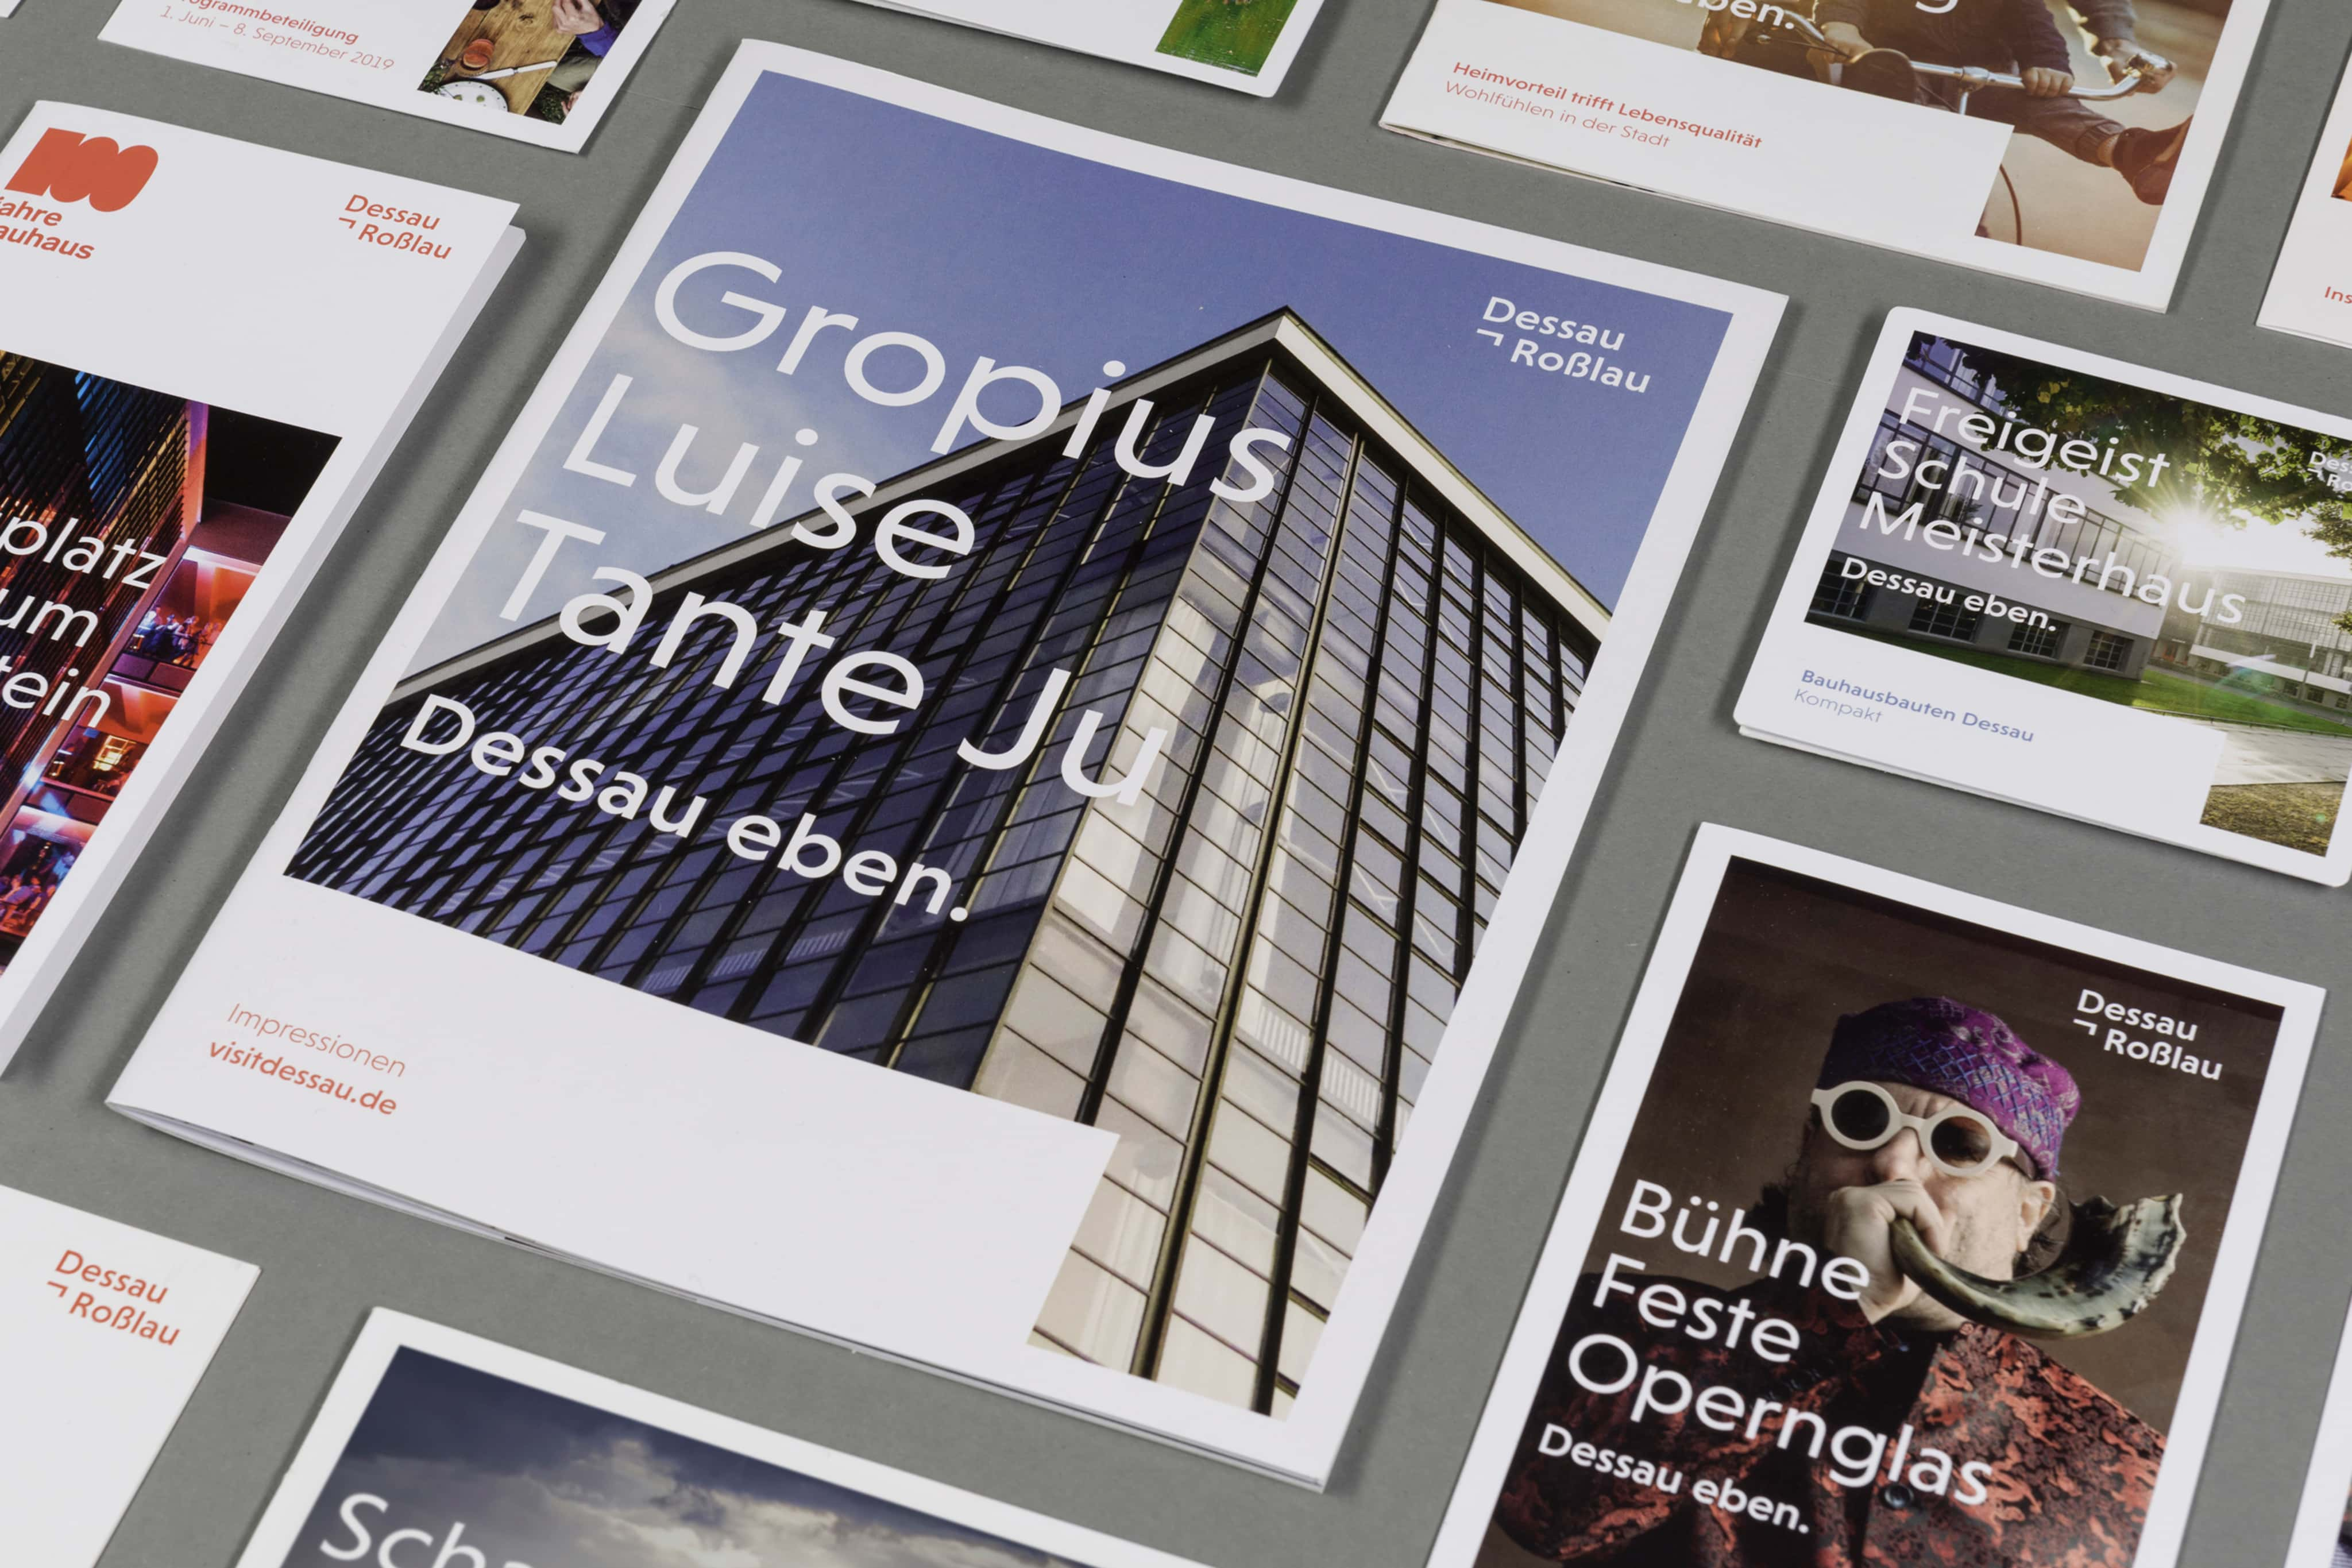 Dessau-Rosslau Corporate Design Cover